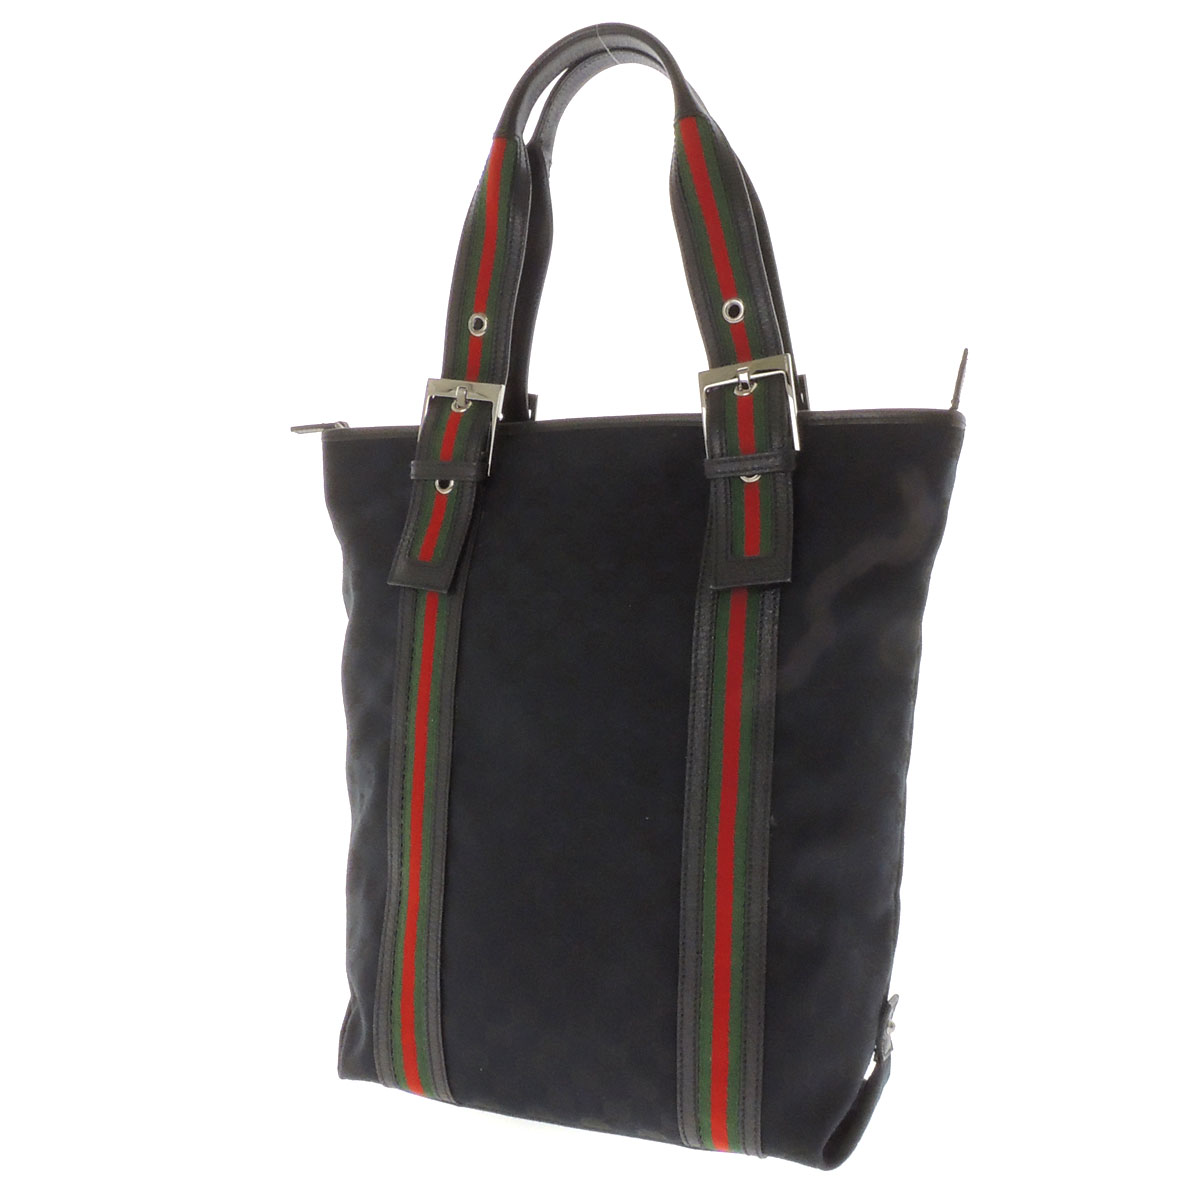 GUCCI vertical GG pattern tote bag GG canvas x leather unisex